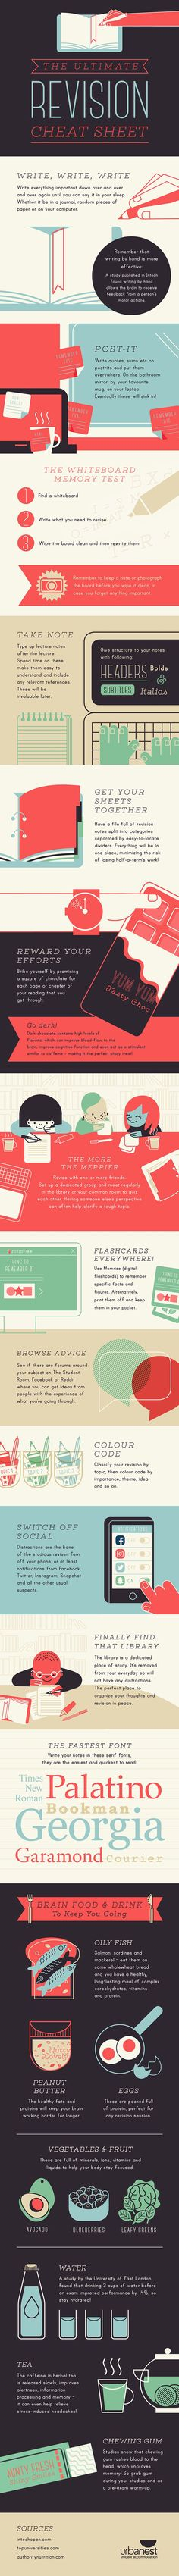 The Ultimate Revision Cheat Sheet #Infographic #Education